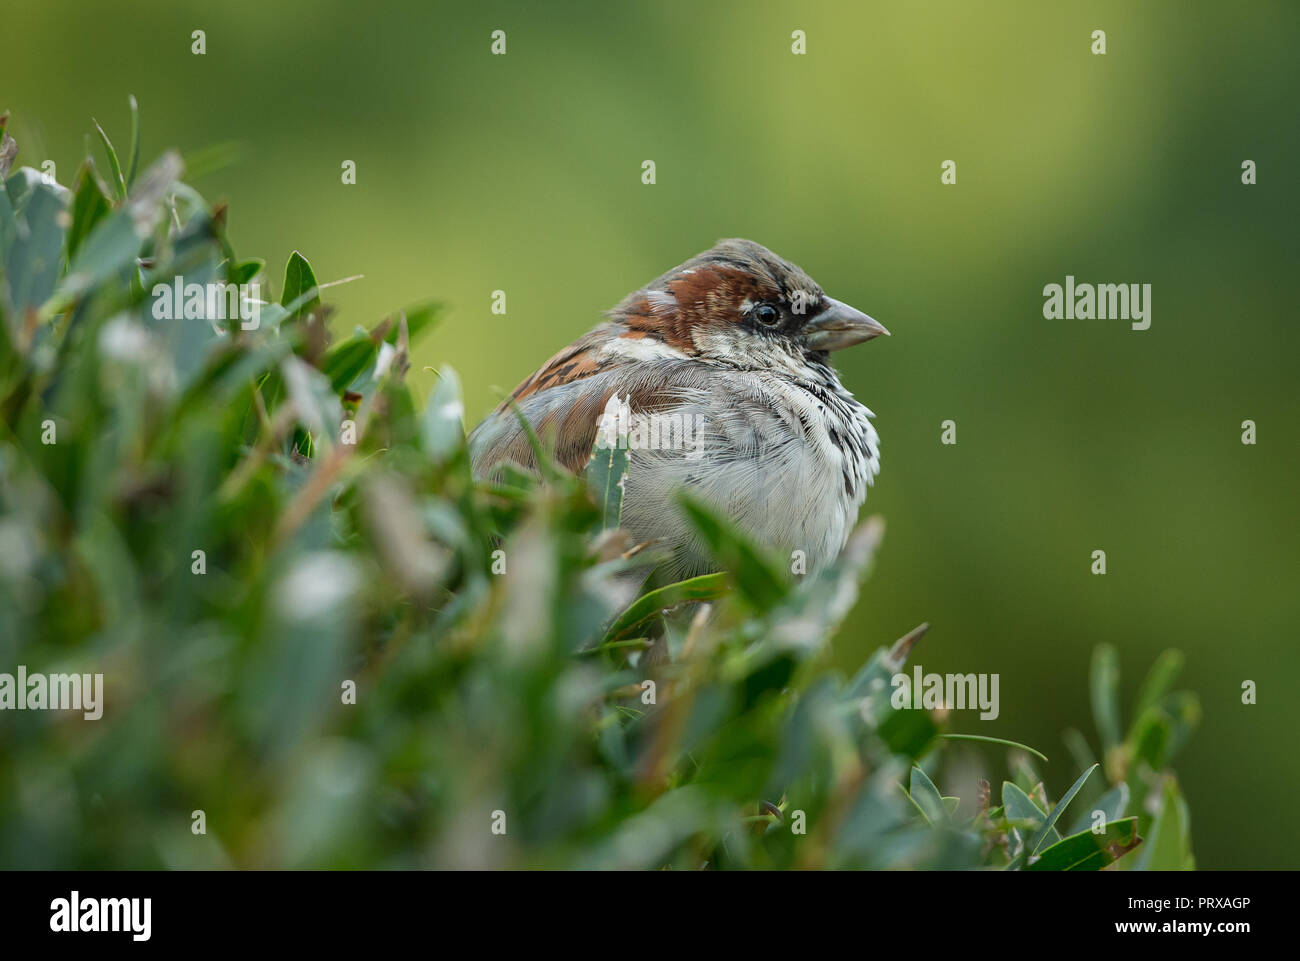 Tree sparrow. Scientific name: Passer montanus)  Male tree sparrow perched in natural habitat of garden shrubbery.  Facing right.  Horizontal. - Stock Image